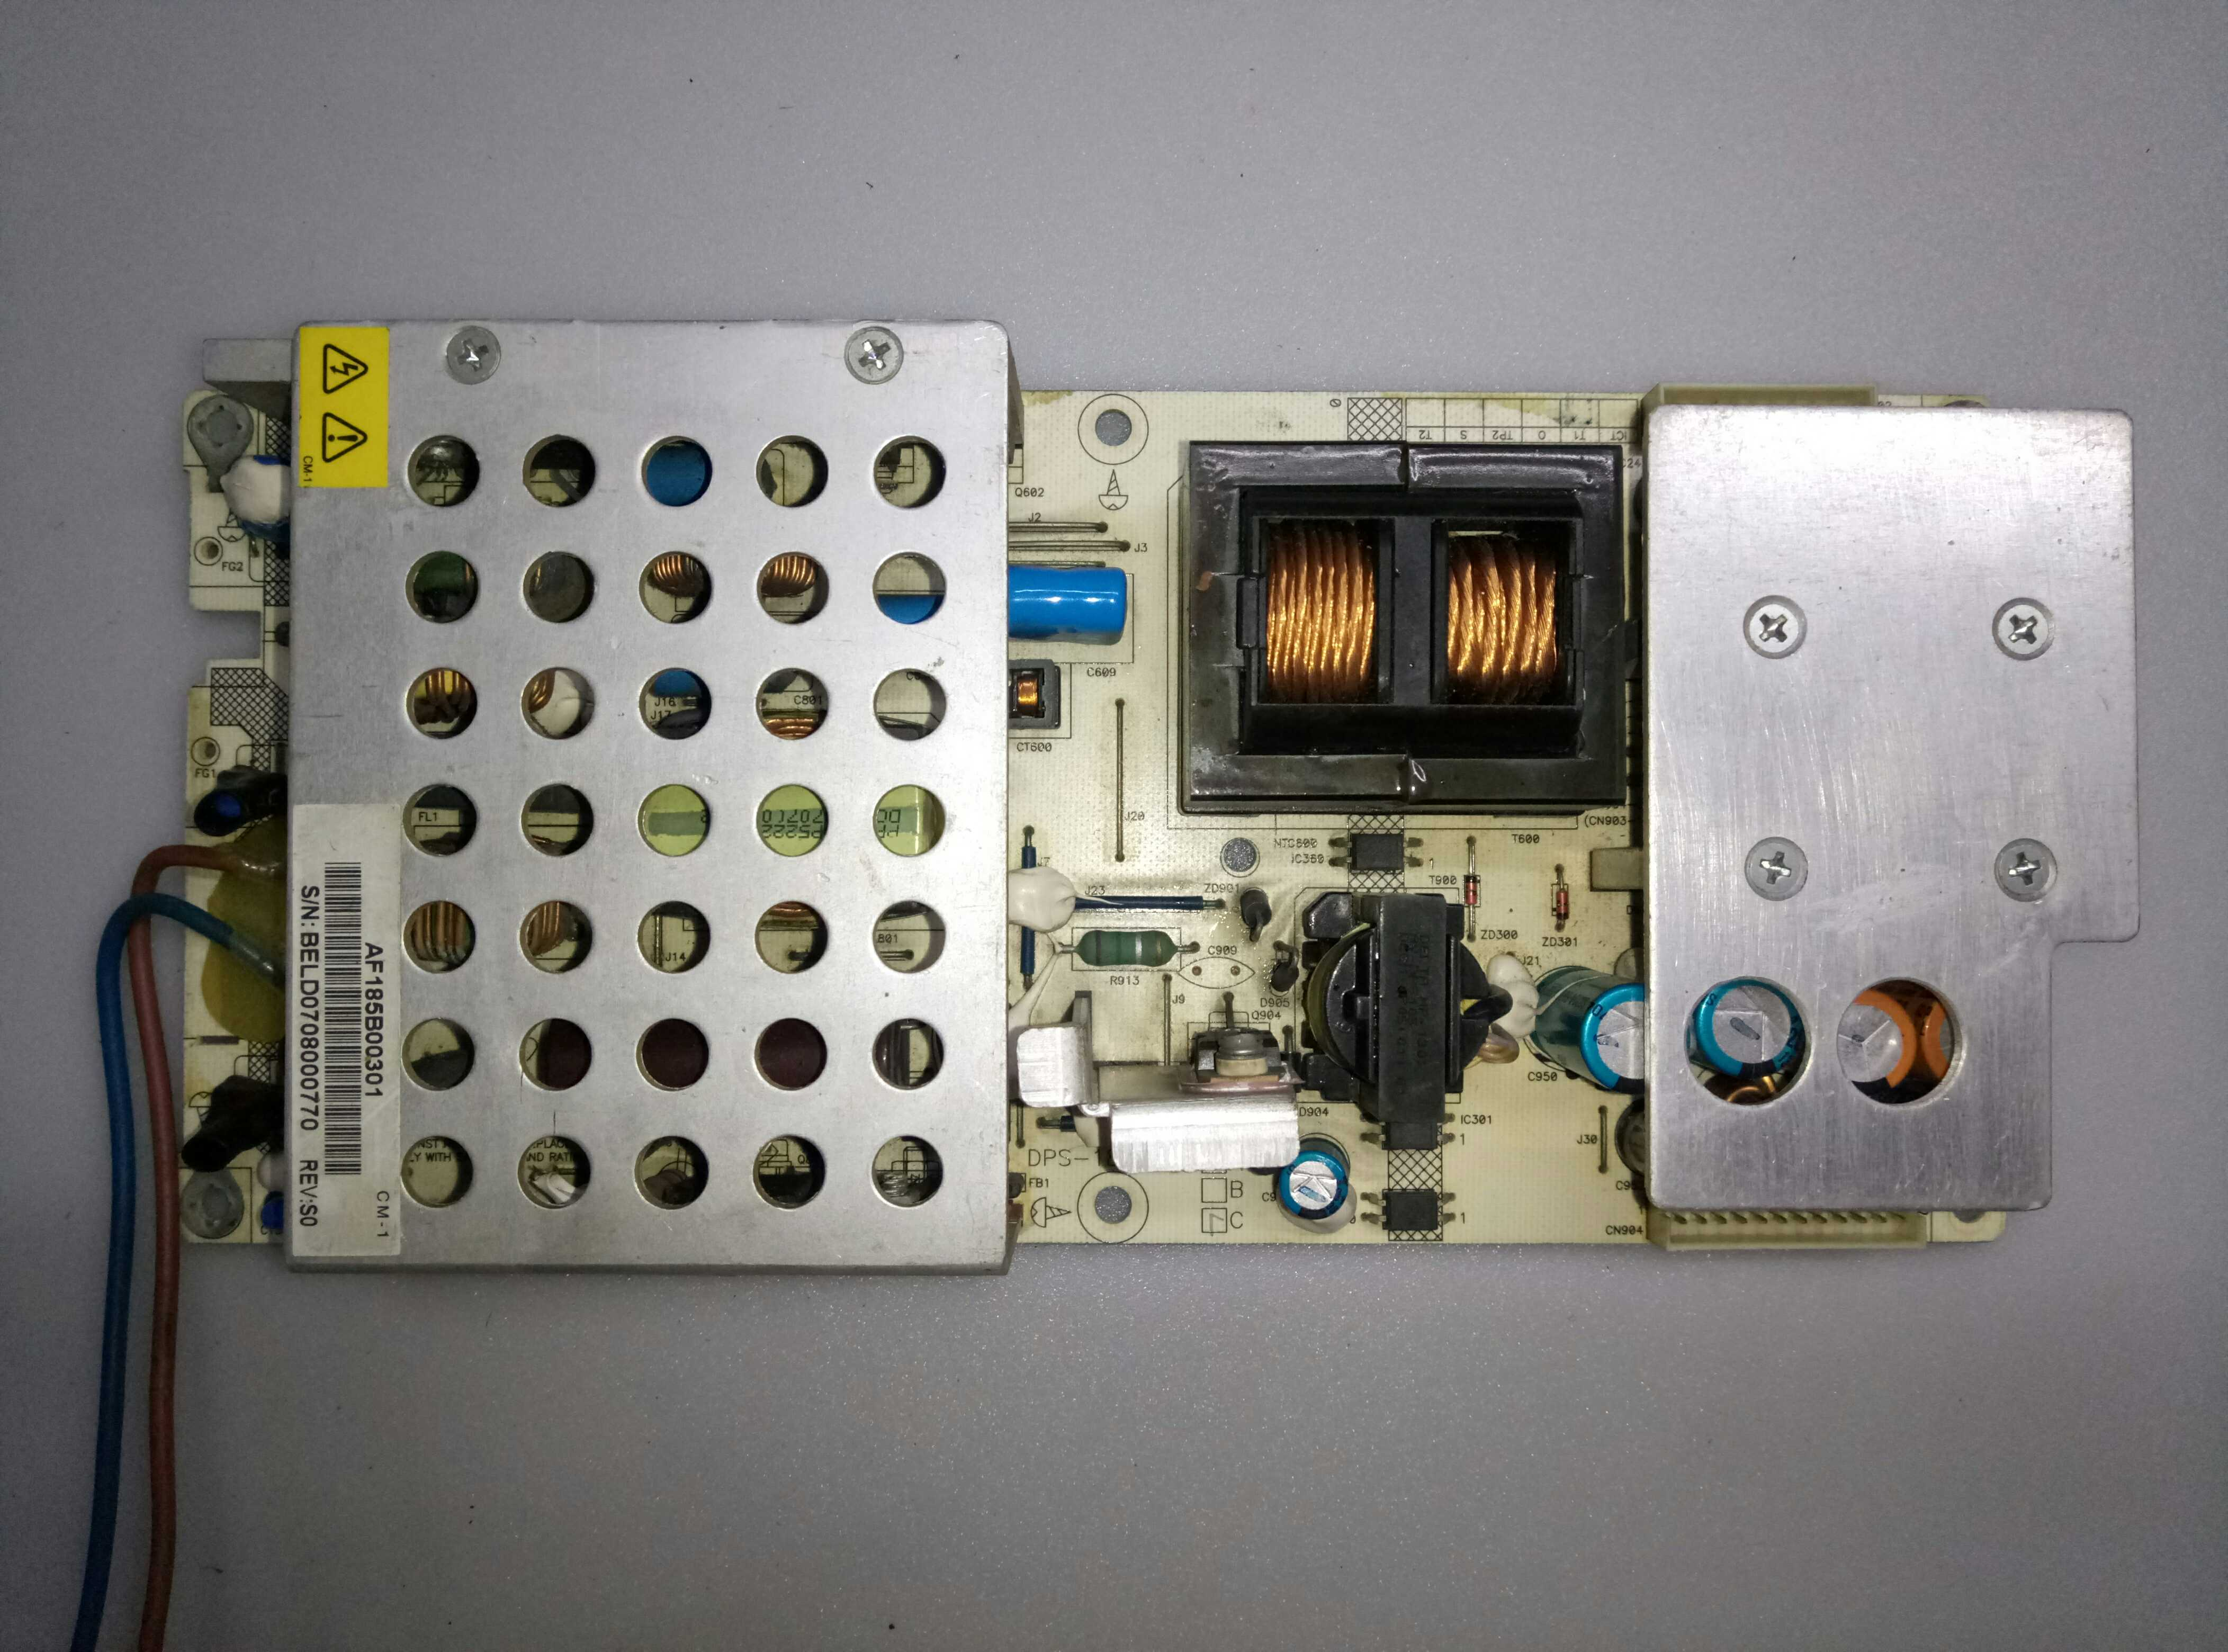 DPS-185KP-2 power board